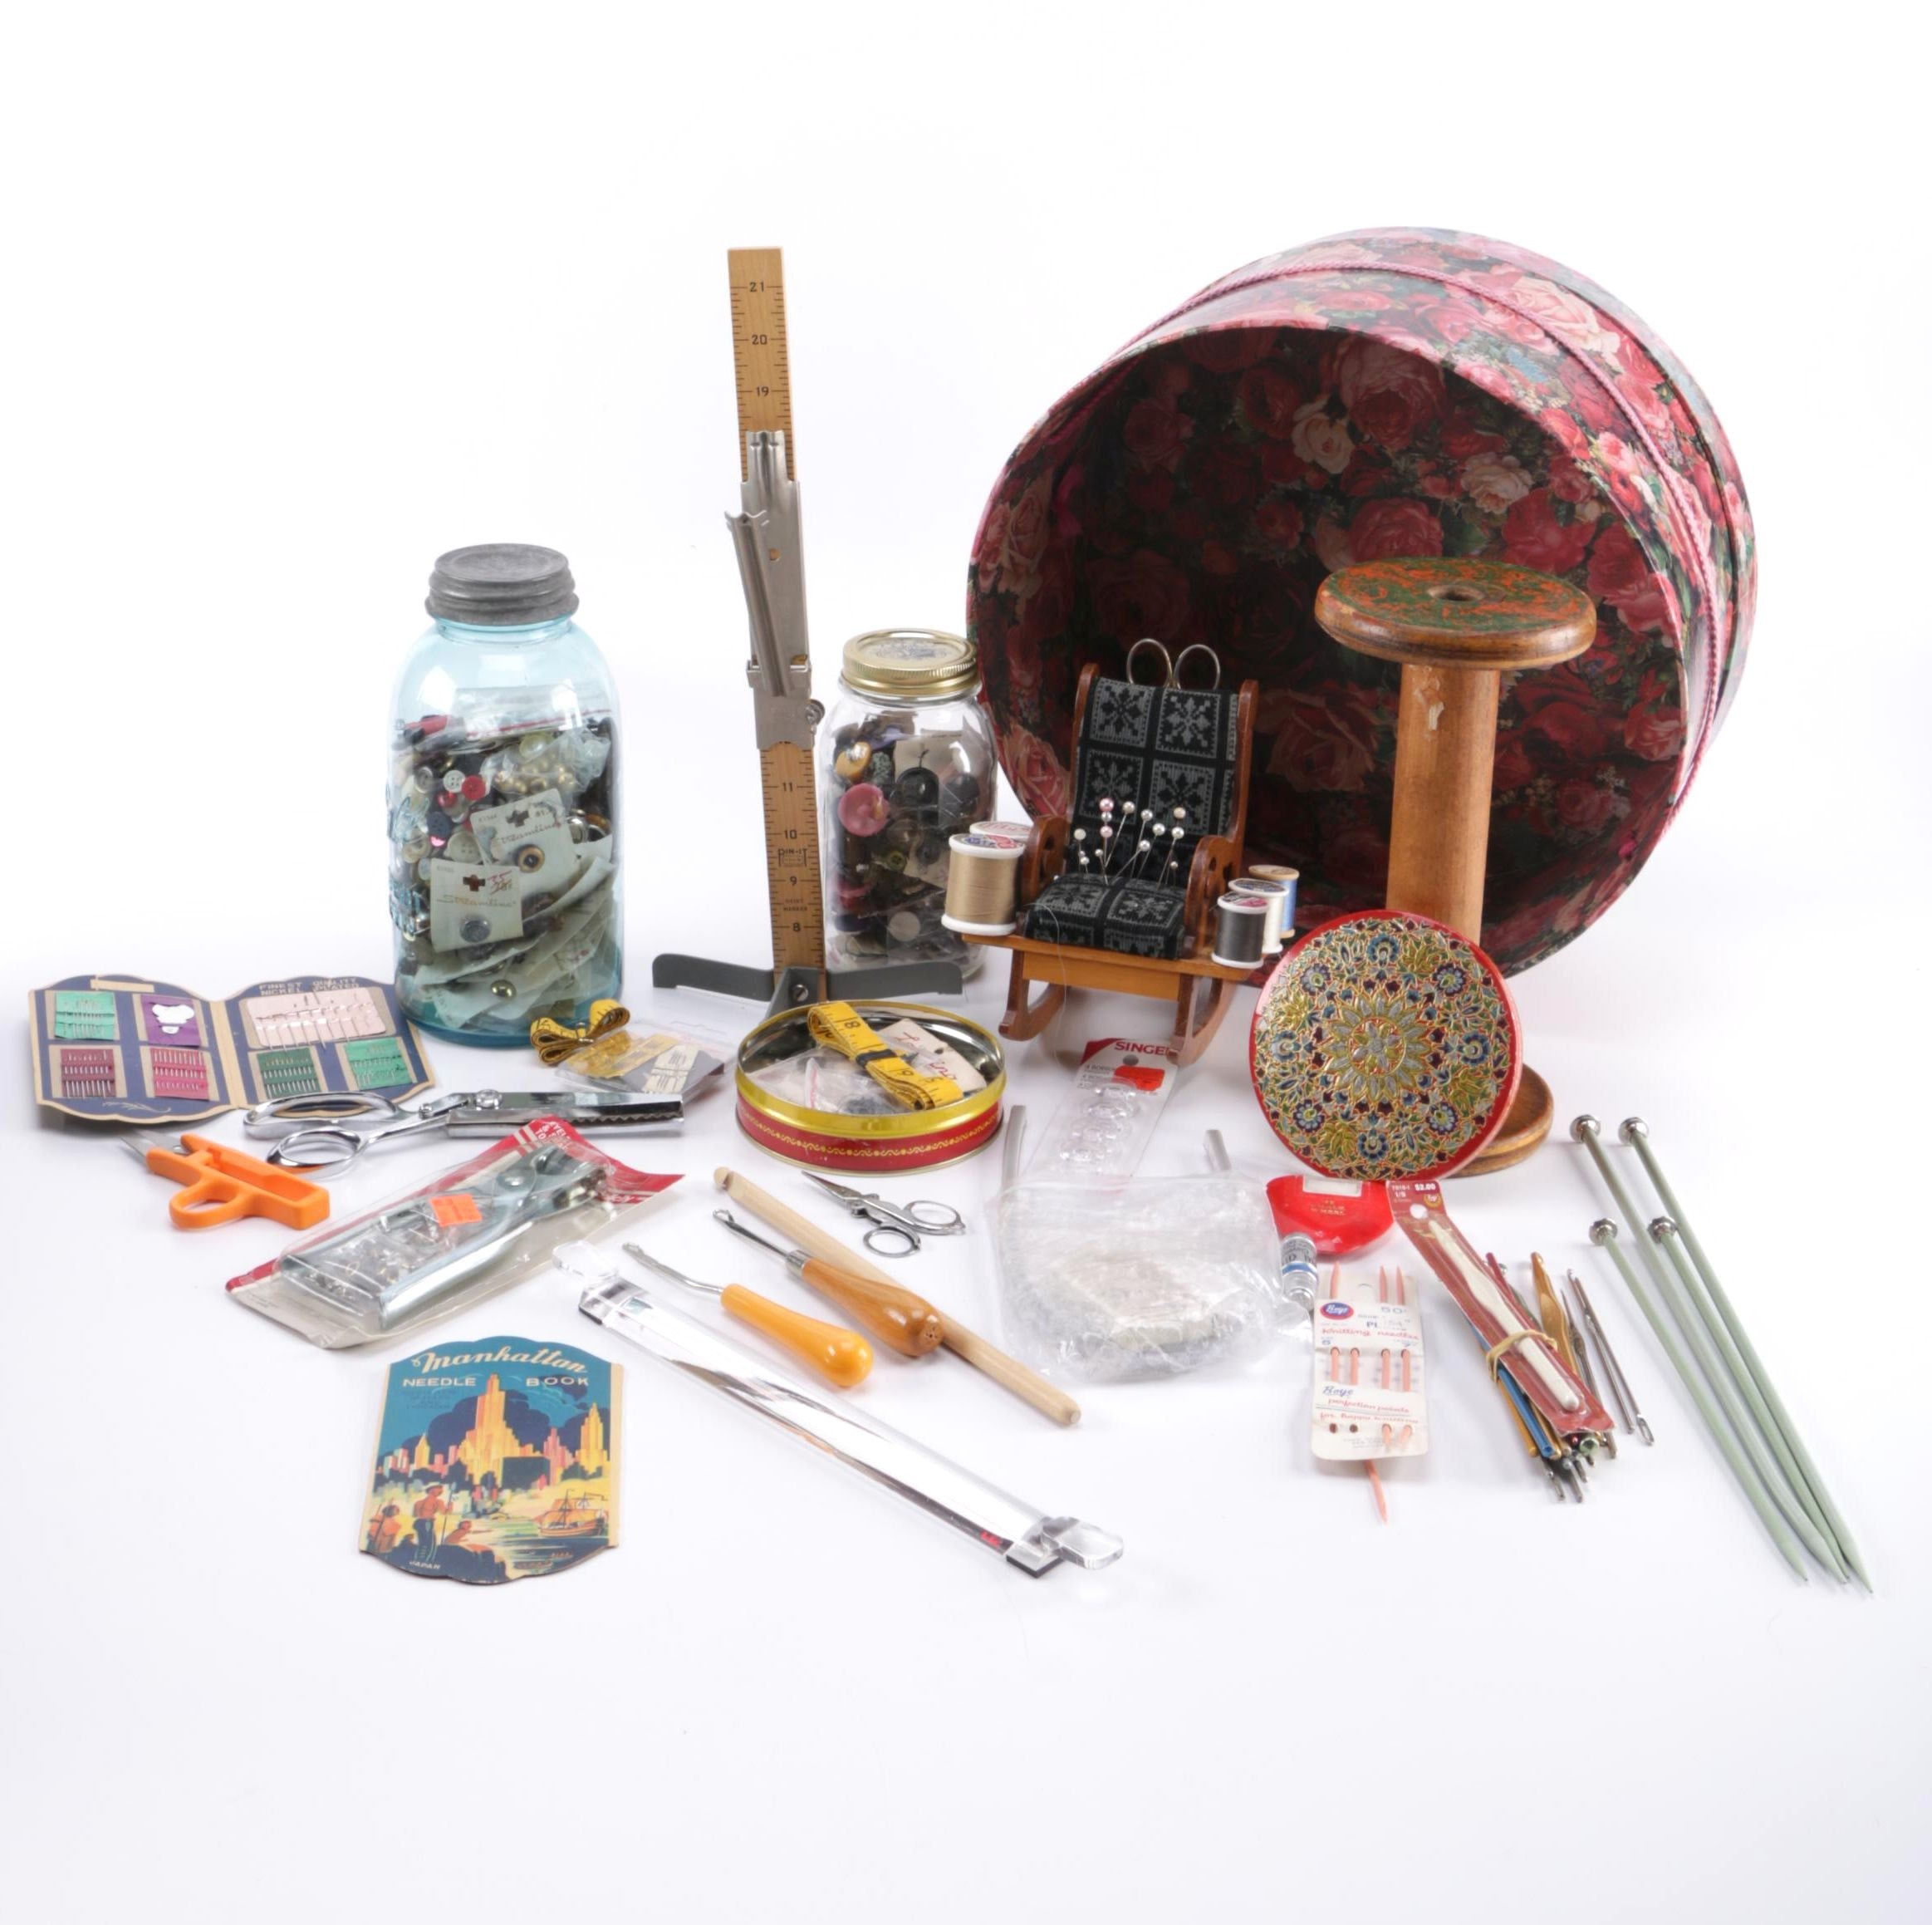 Sewing and Needlework Supplies